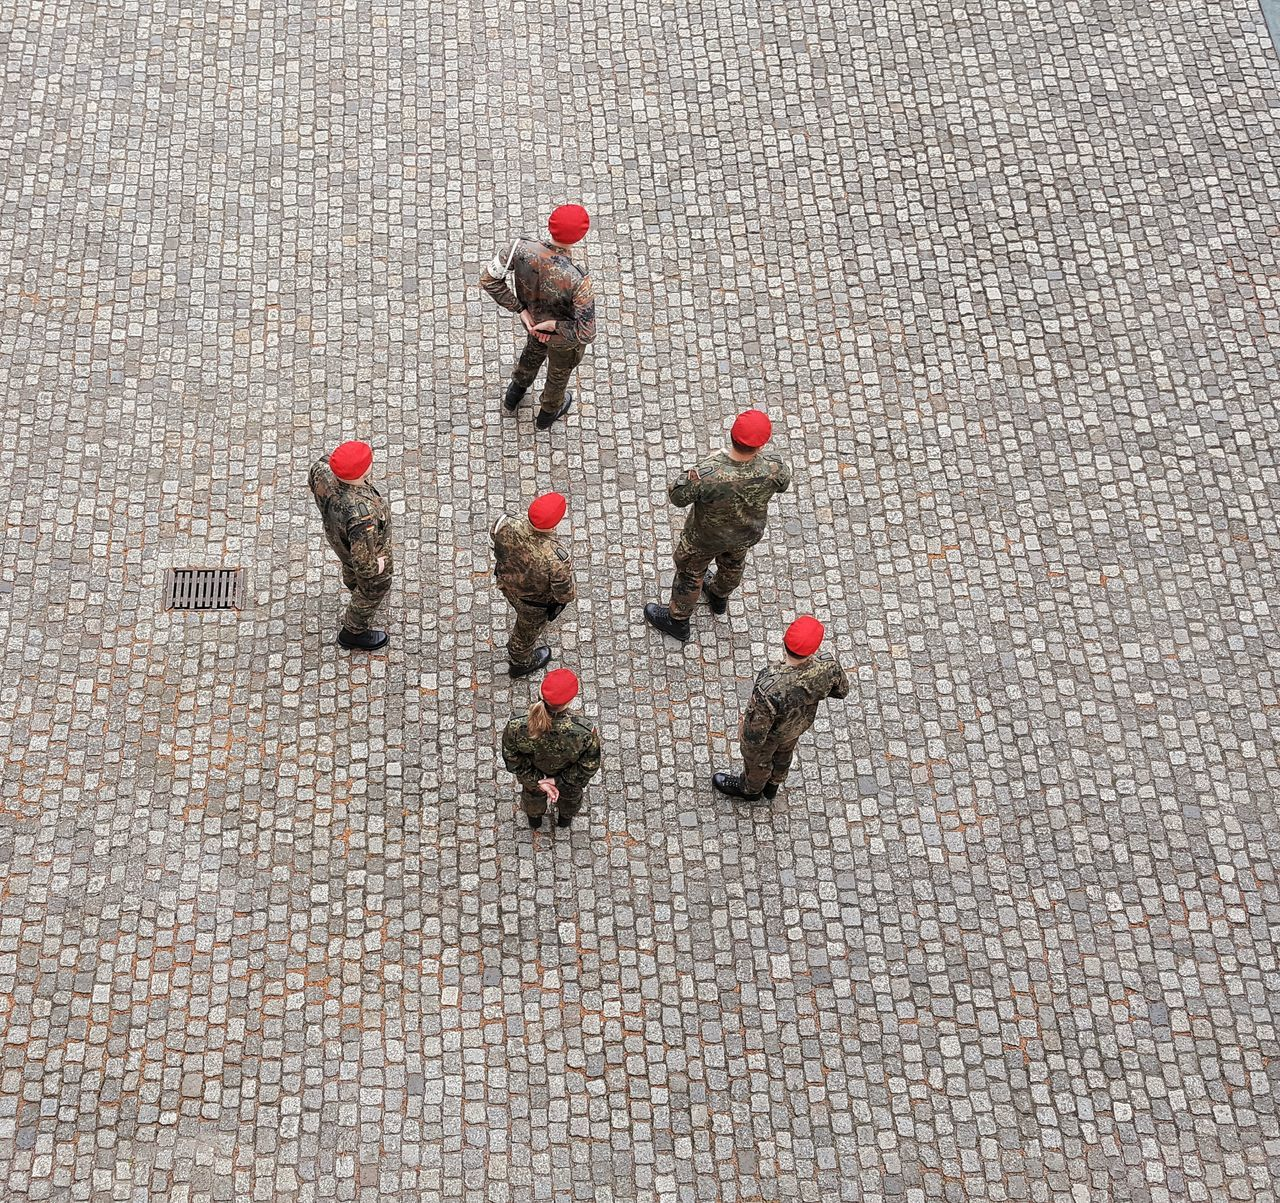 R.E.D. Adult Adults Only AntiM Business Businessman Cooperation Coworker Day Directly Above Full Length Group Of People High Angle View Large Group Of People Men Military Police Only Men Outdoors People Red Red And Grey Strategy Teamwork Togetherness Young Adult